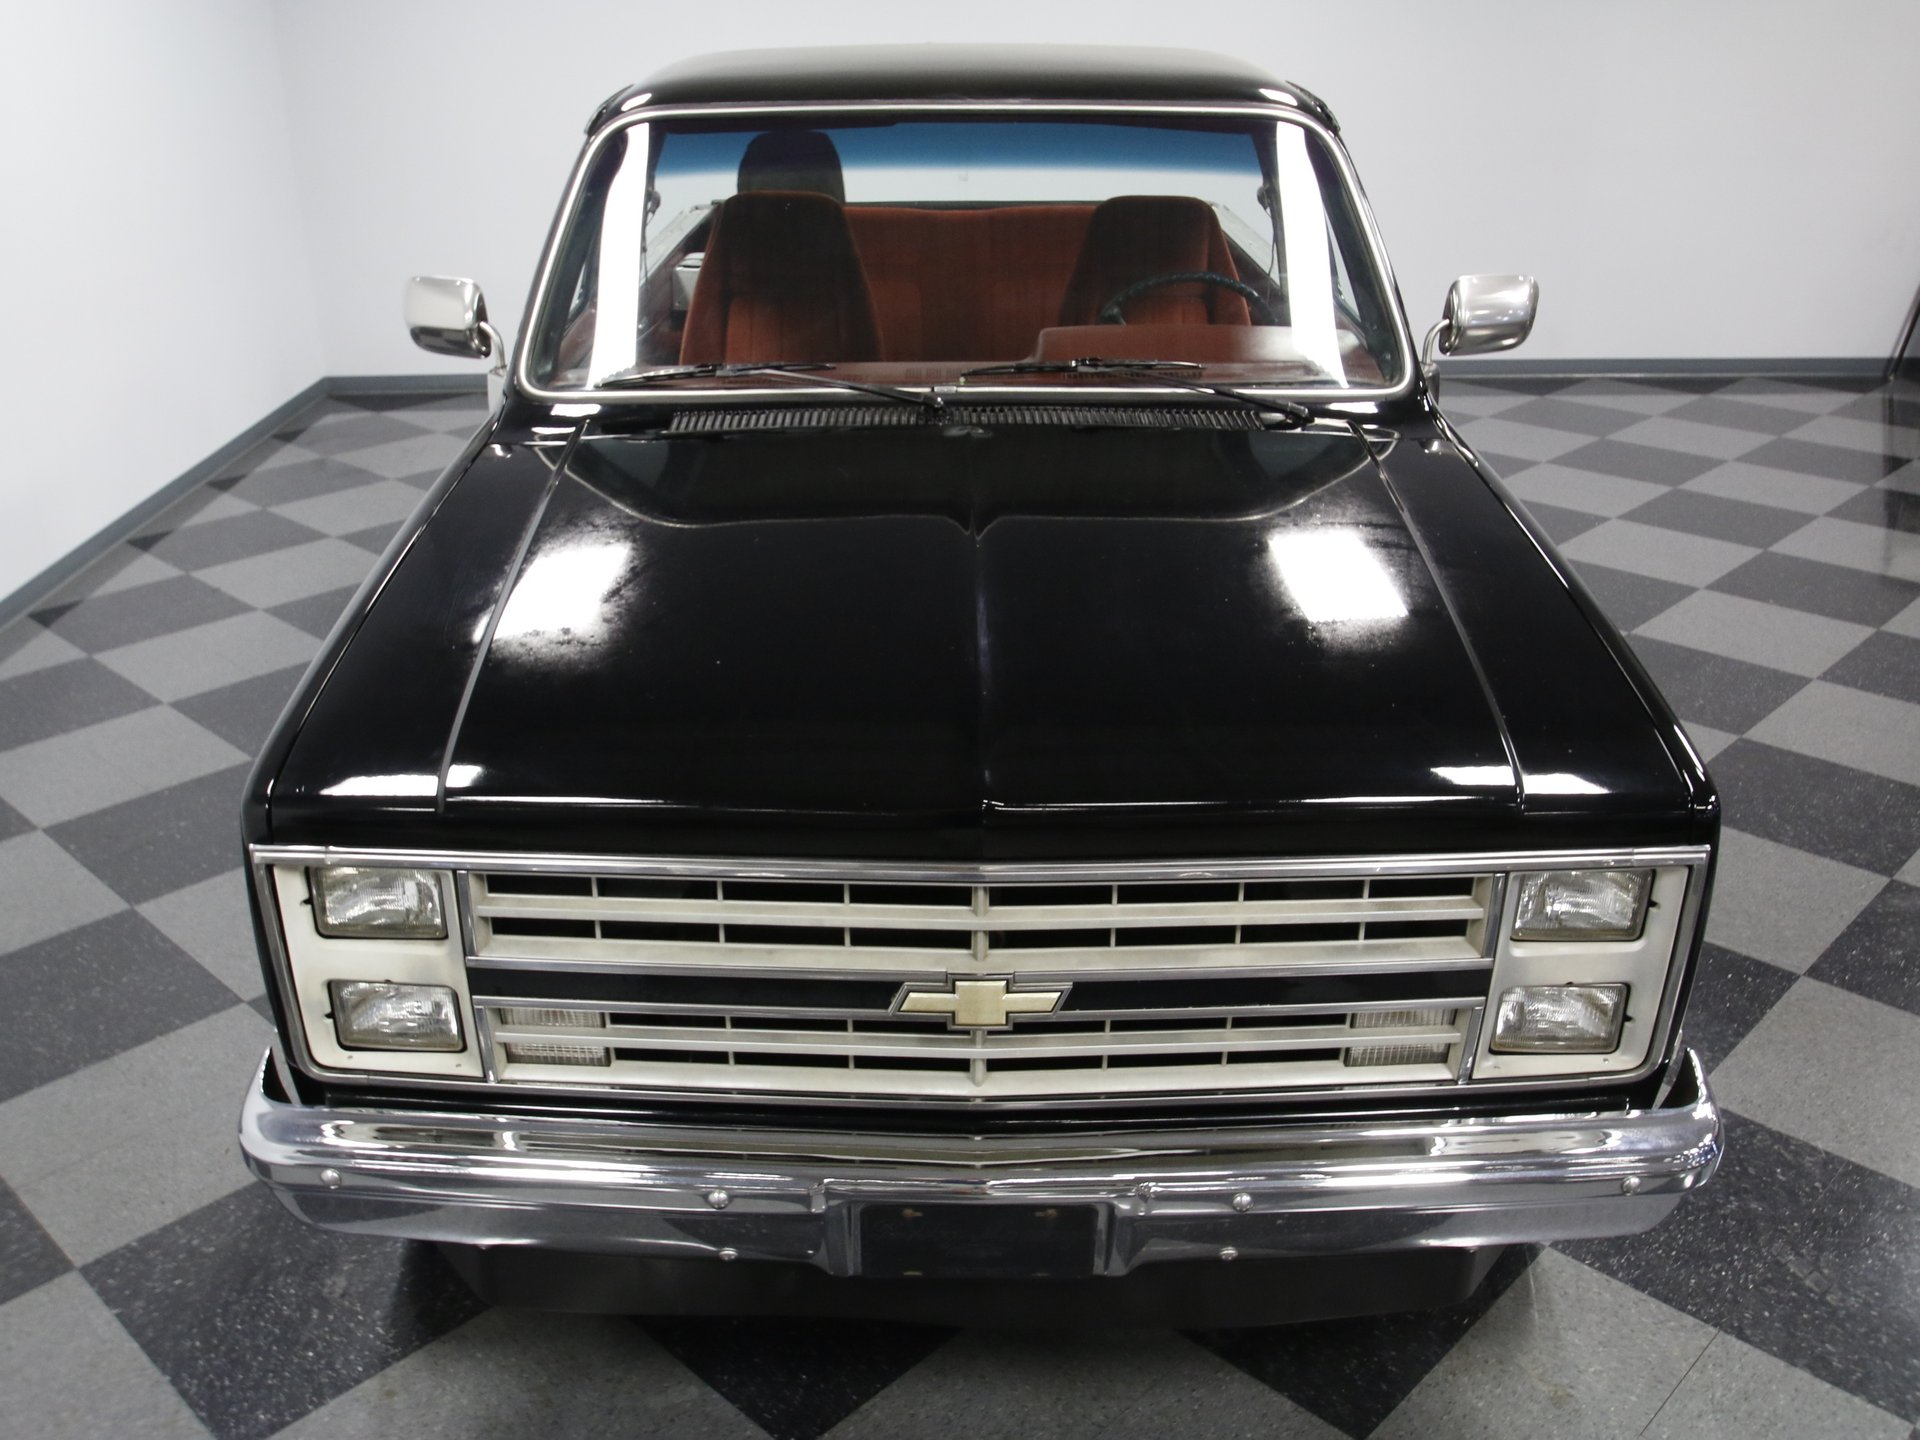 1986 Chevrolet Streetside Classics The Nations Trusted Classic 1968 Chevy 4x4 For Sale View 360